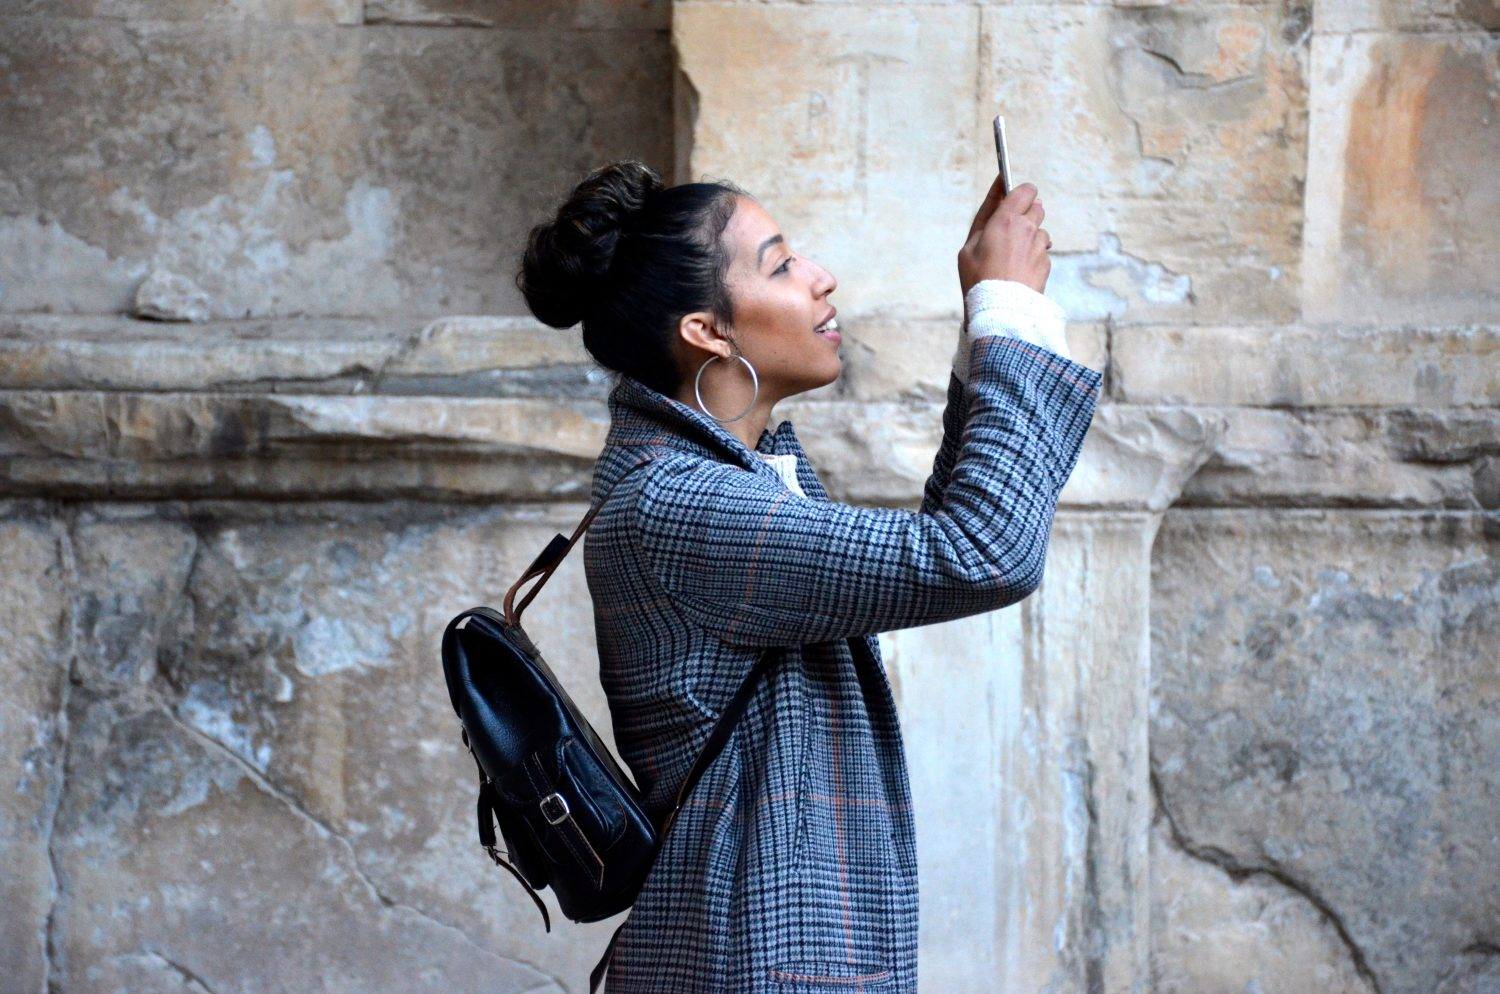 frequent selfie-posting linked to grandiose narcissism